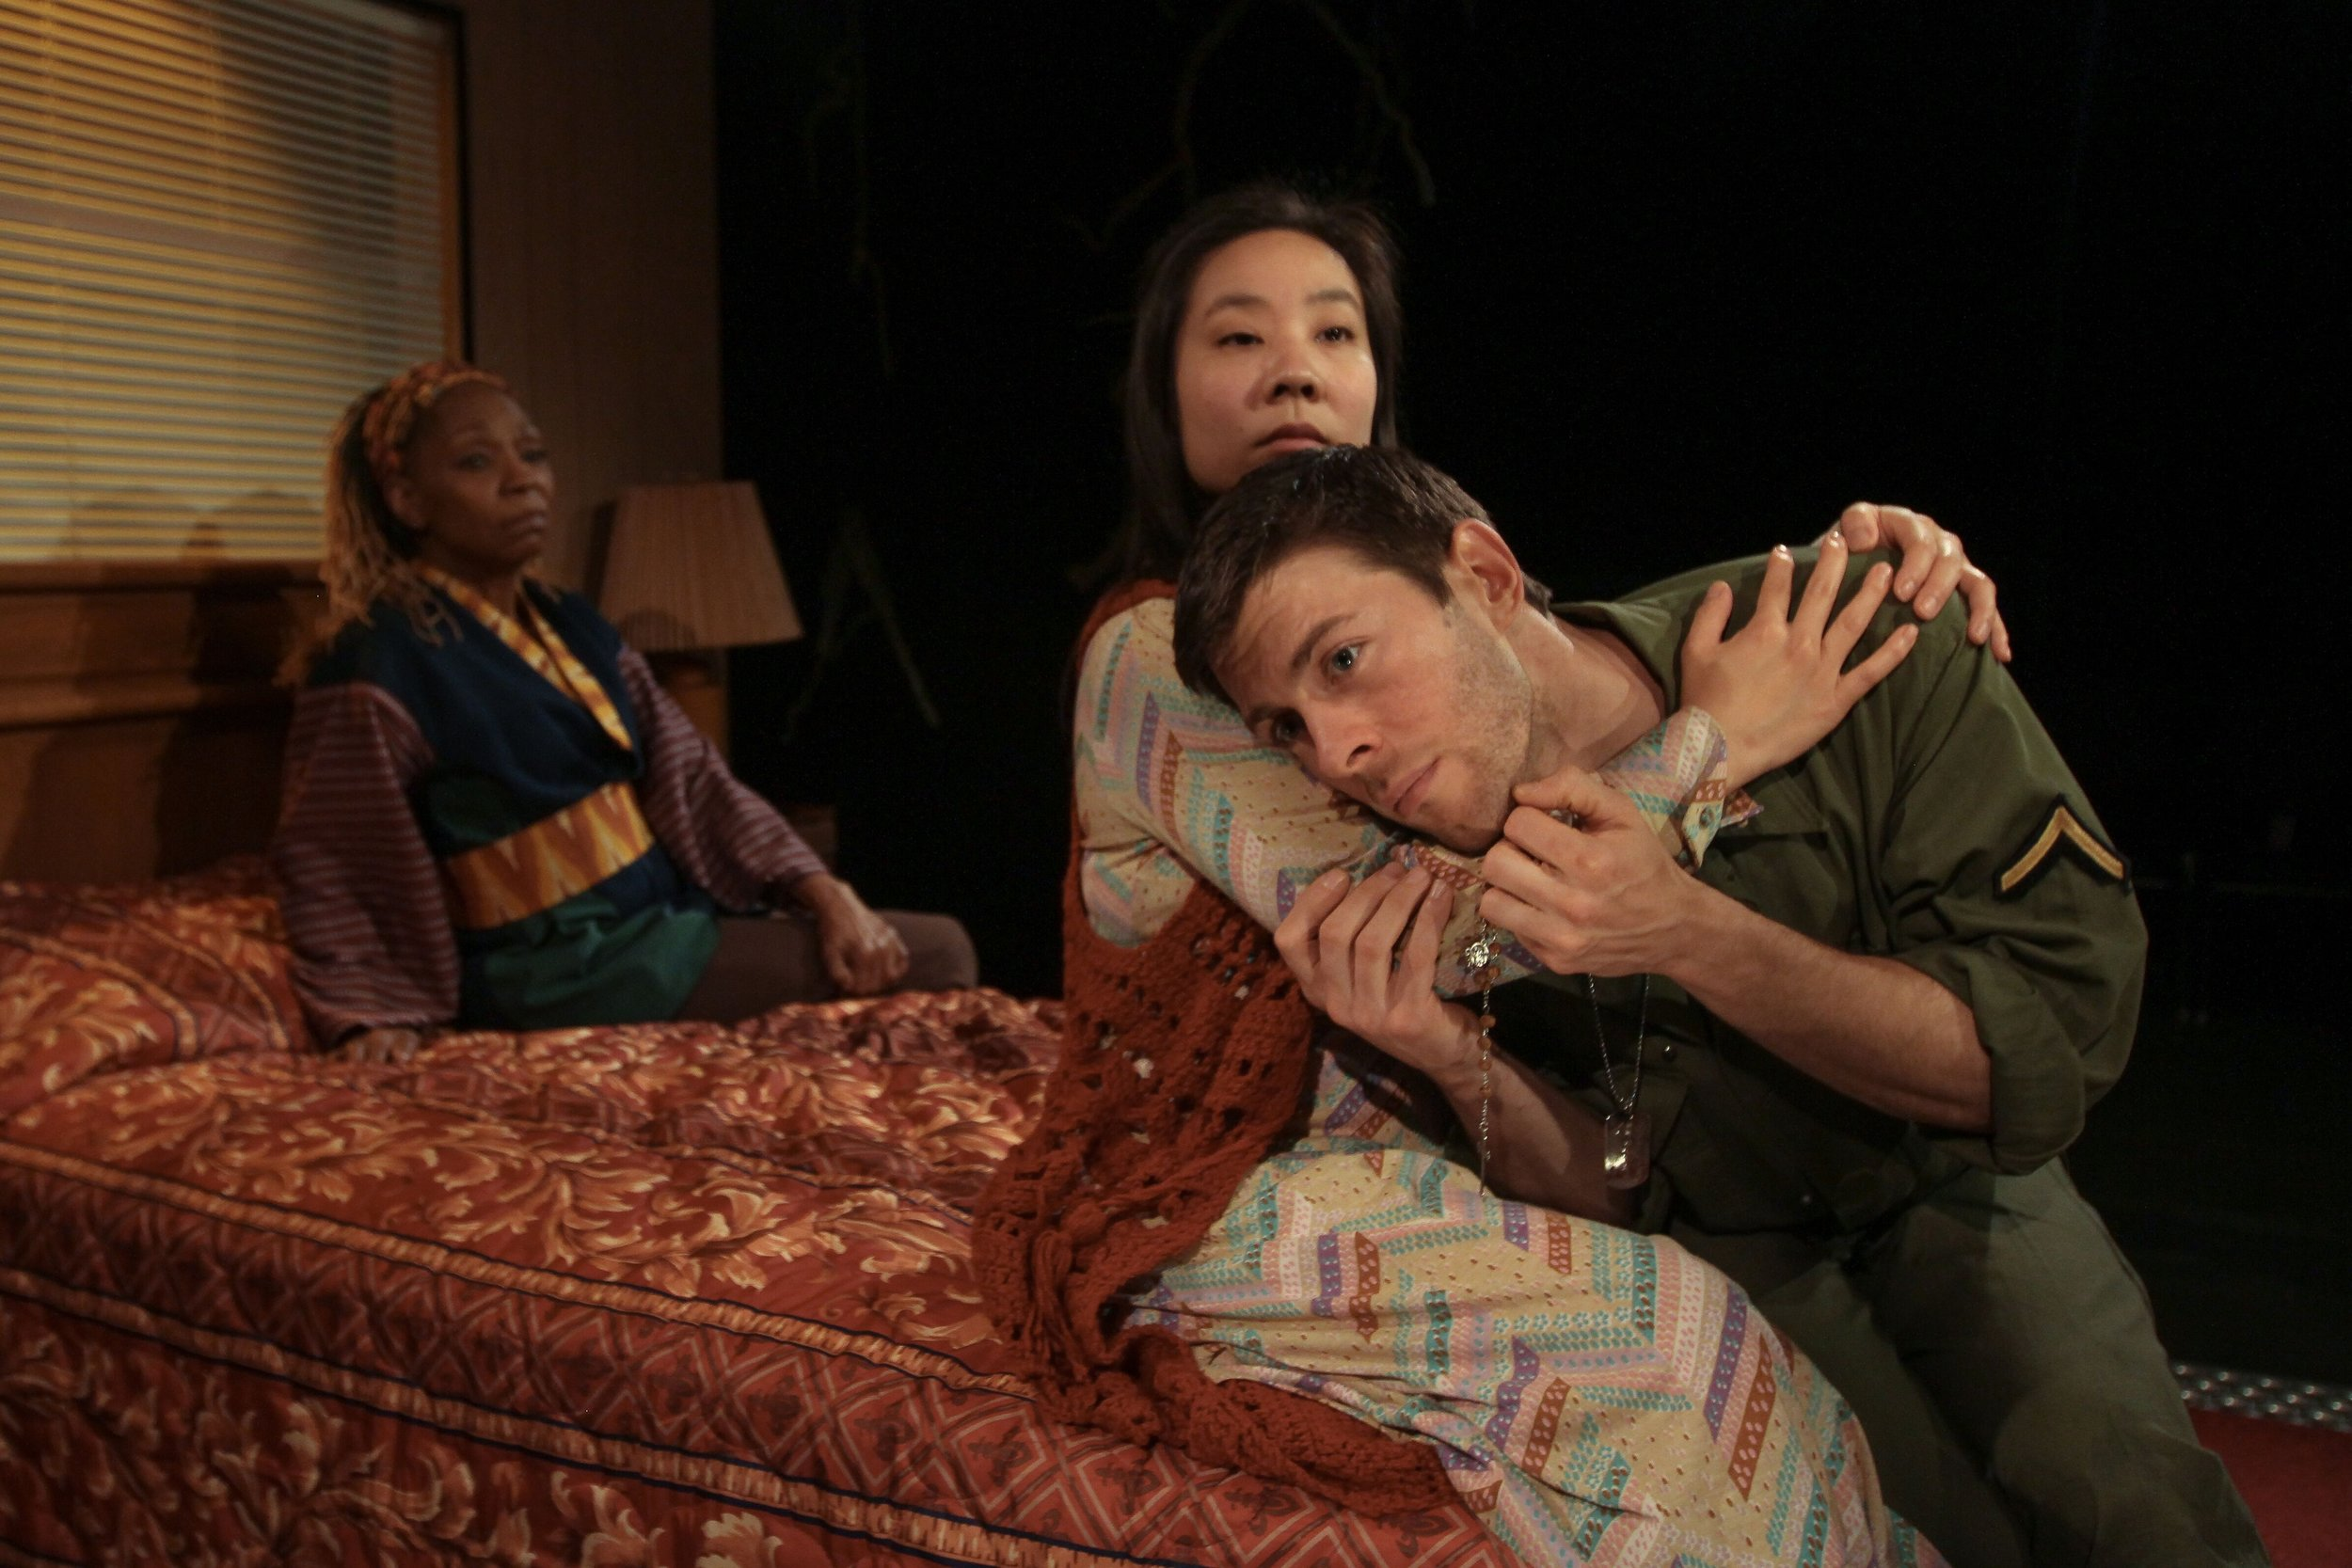 Cathy Simpson, Bi Jean Ngo and James Kern - Among The Dead - Photo: Paola Nogueras